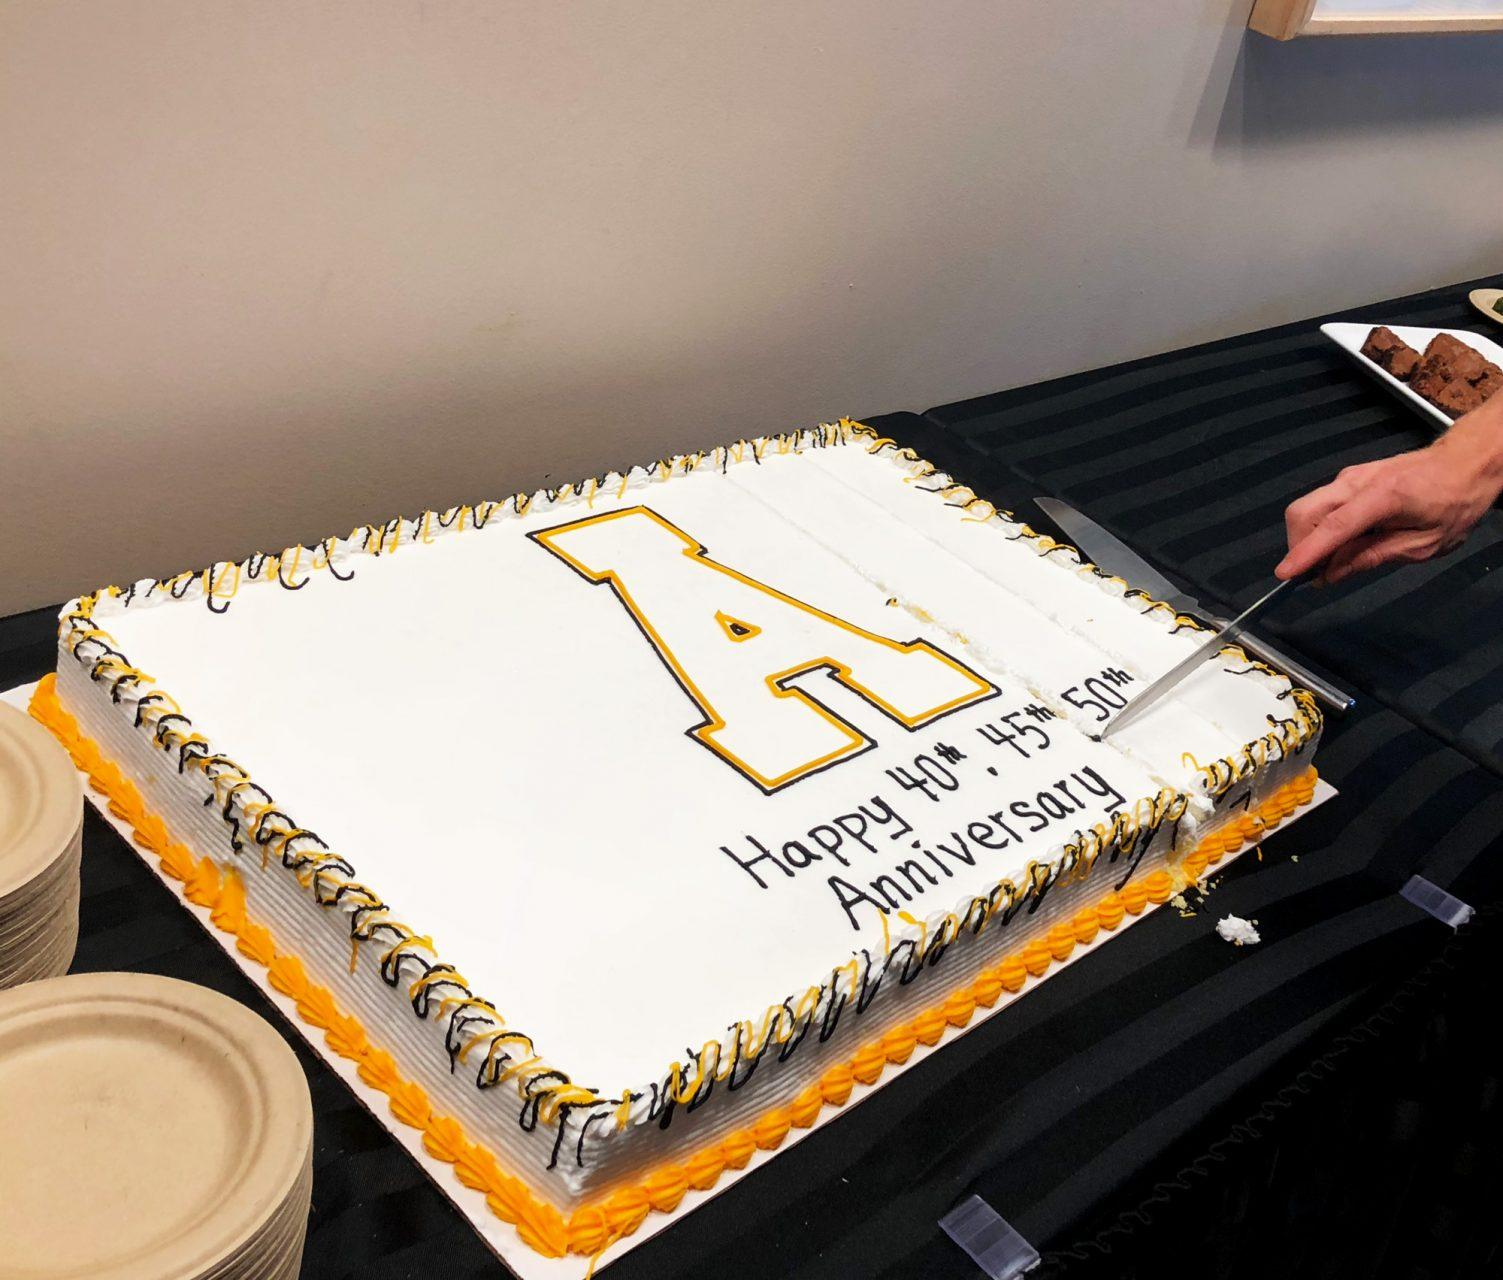 Panel and cake cutting honors Appalachian Studies